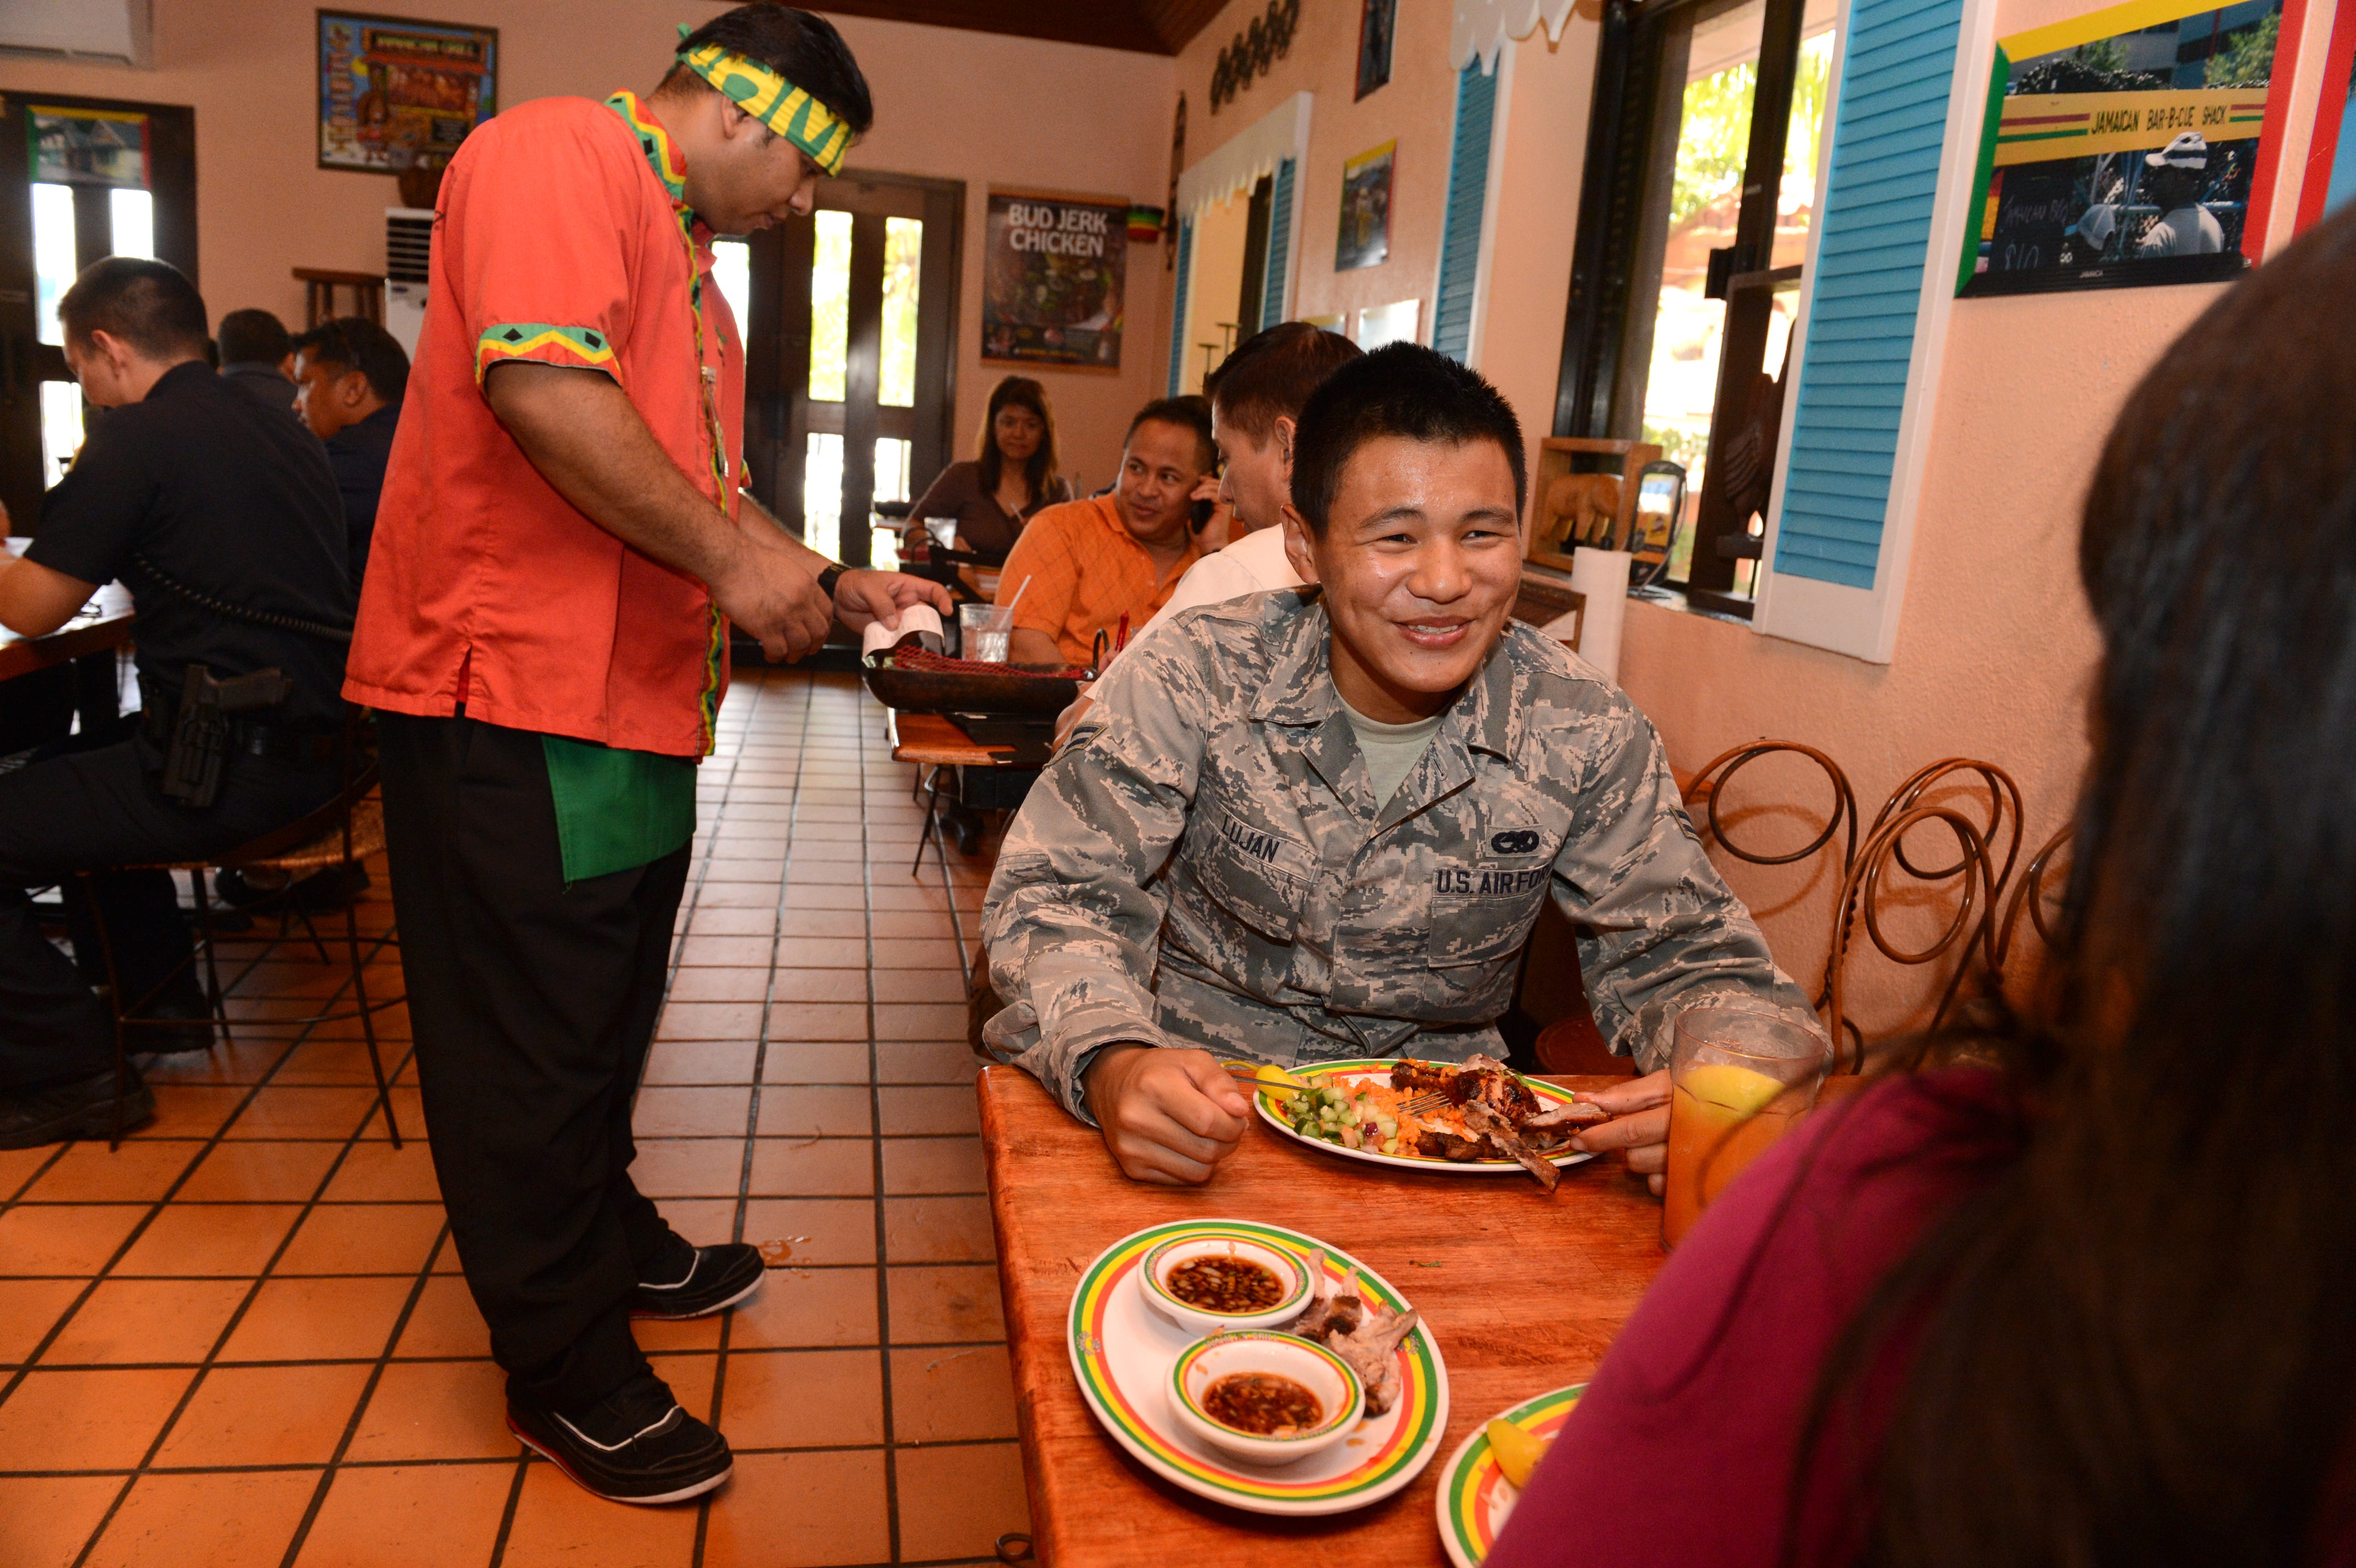 Airman 1st Class Patrick Lujan smiles as he enjoys lunch with his mother, Jae Medina, at the Jamaican Grill in Hagåtña on Sept. 11, 2012. Jamaican Grill is one of 40 island restaurants that took a pledge Wednesday to remove salt and other condiments from their tables to reduce the risk of heart disease on Guam.